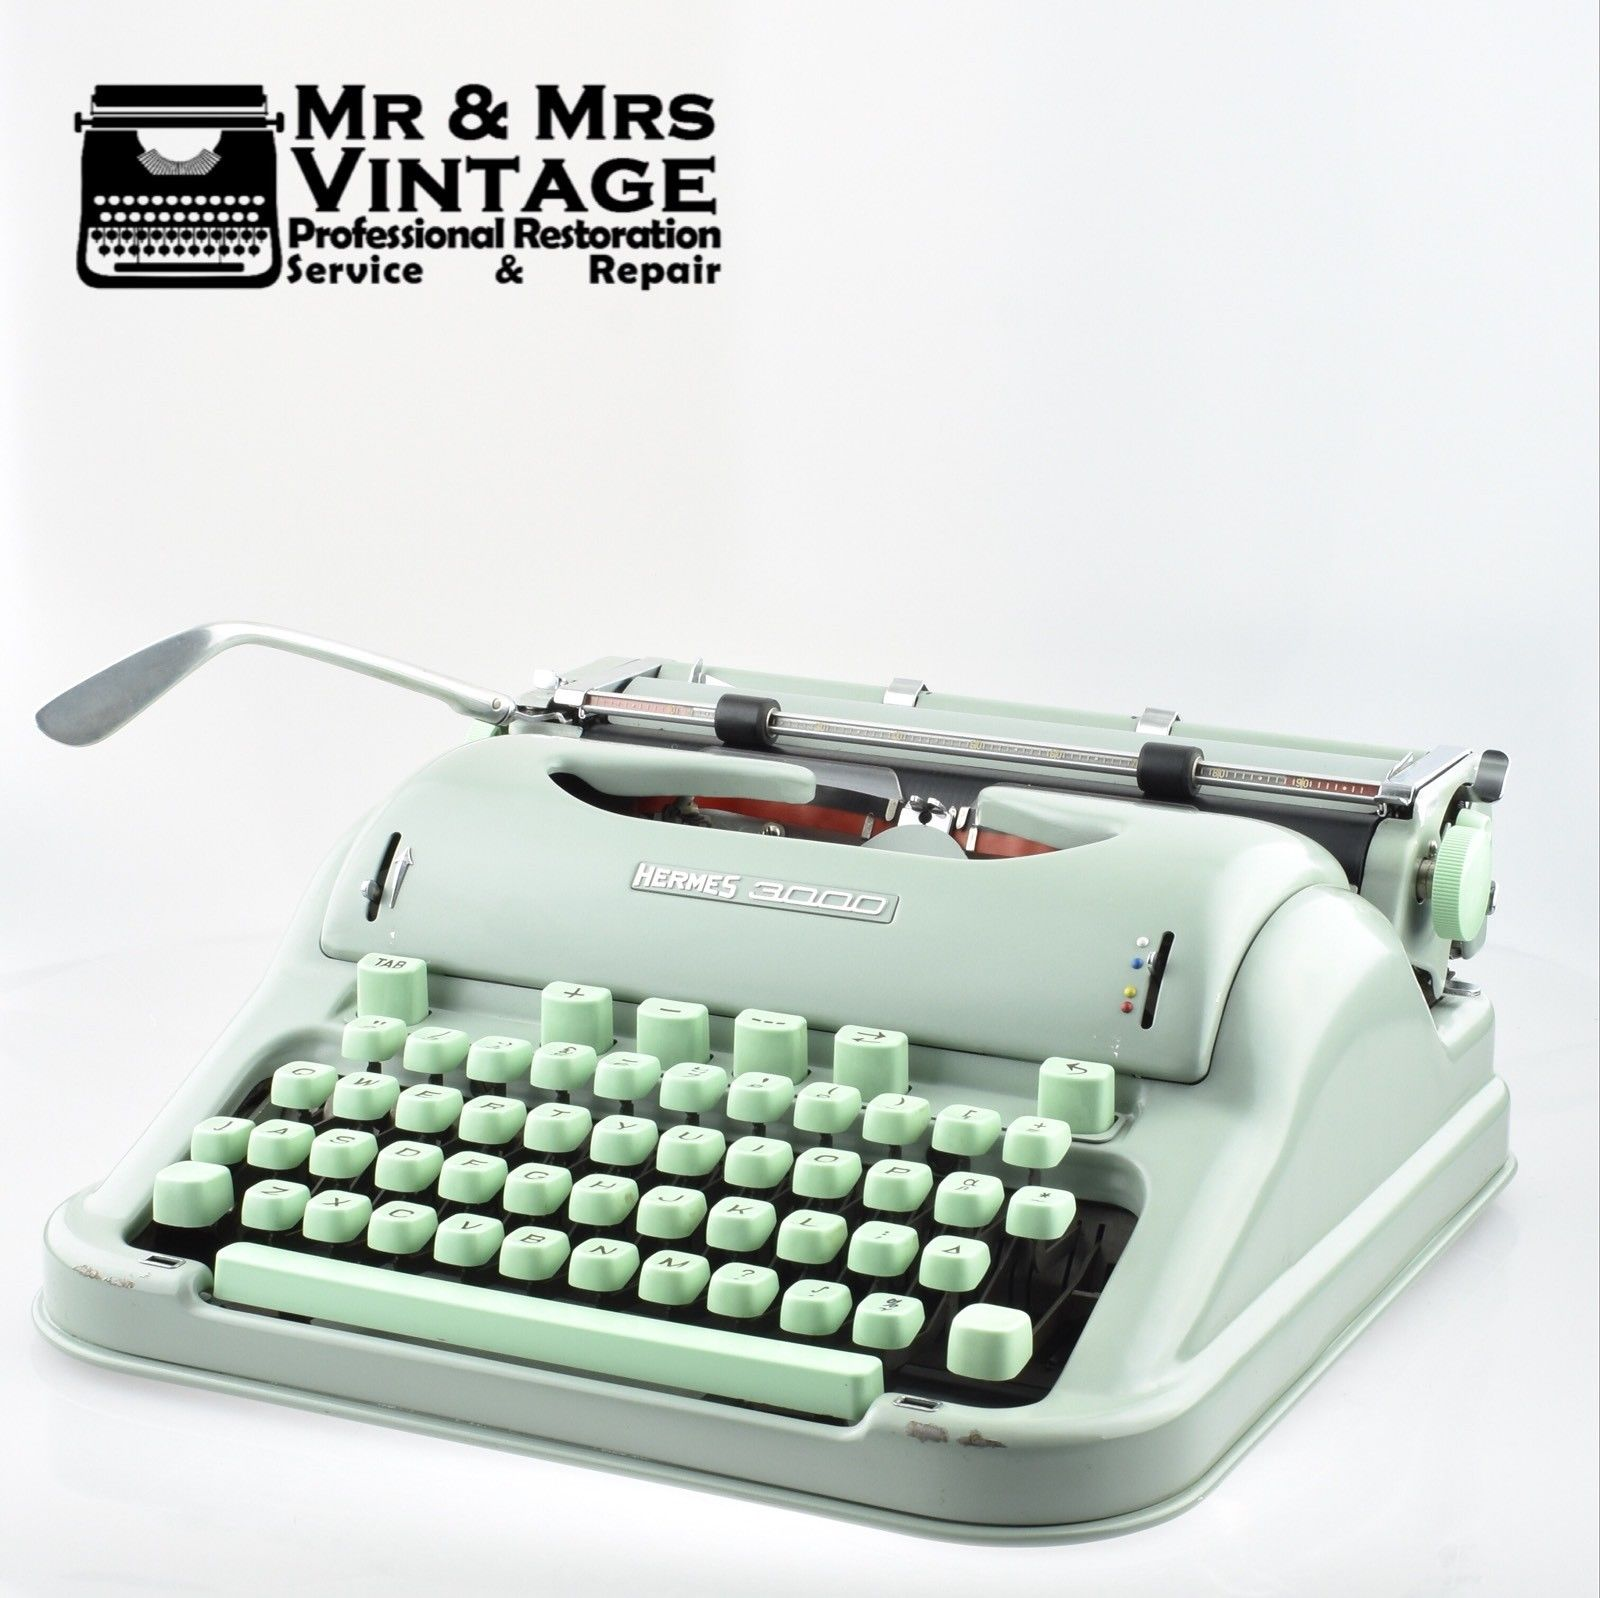 Hermes 3000 Green Typewriter Working & Math Symbols